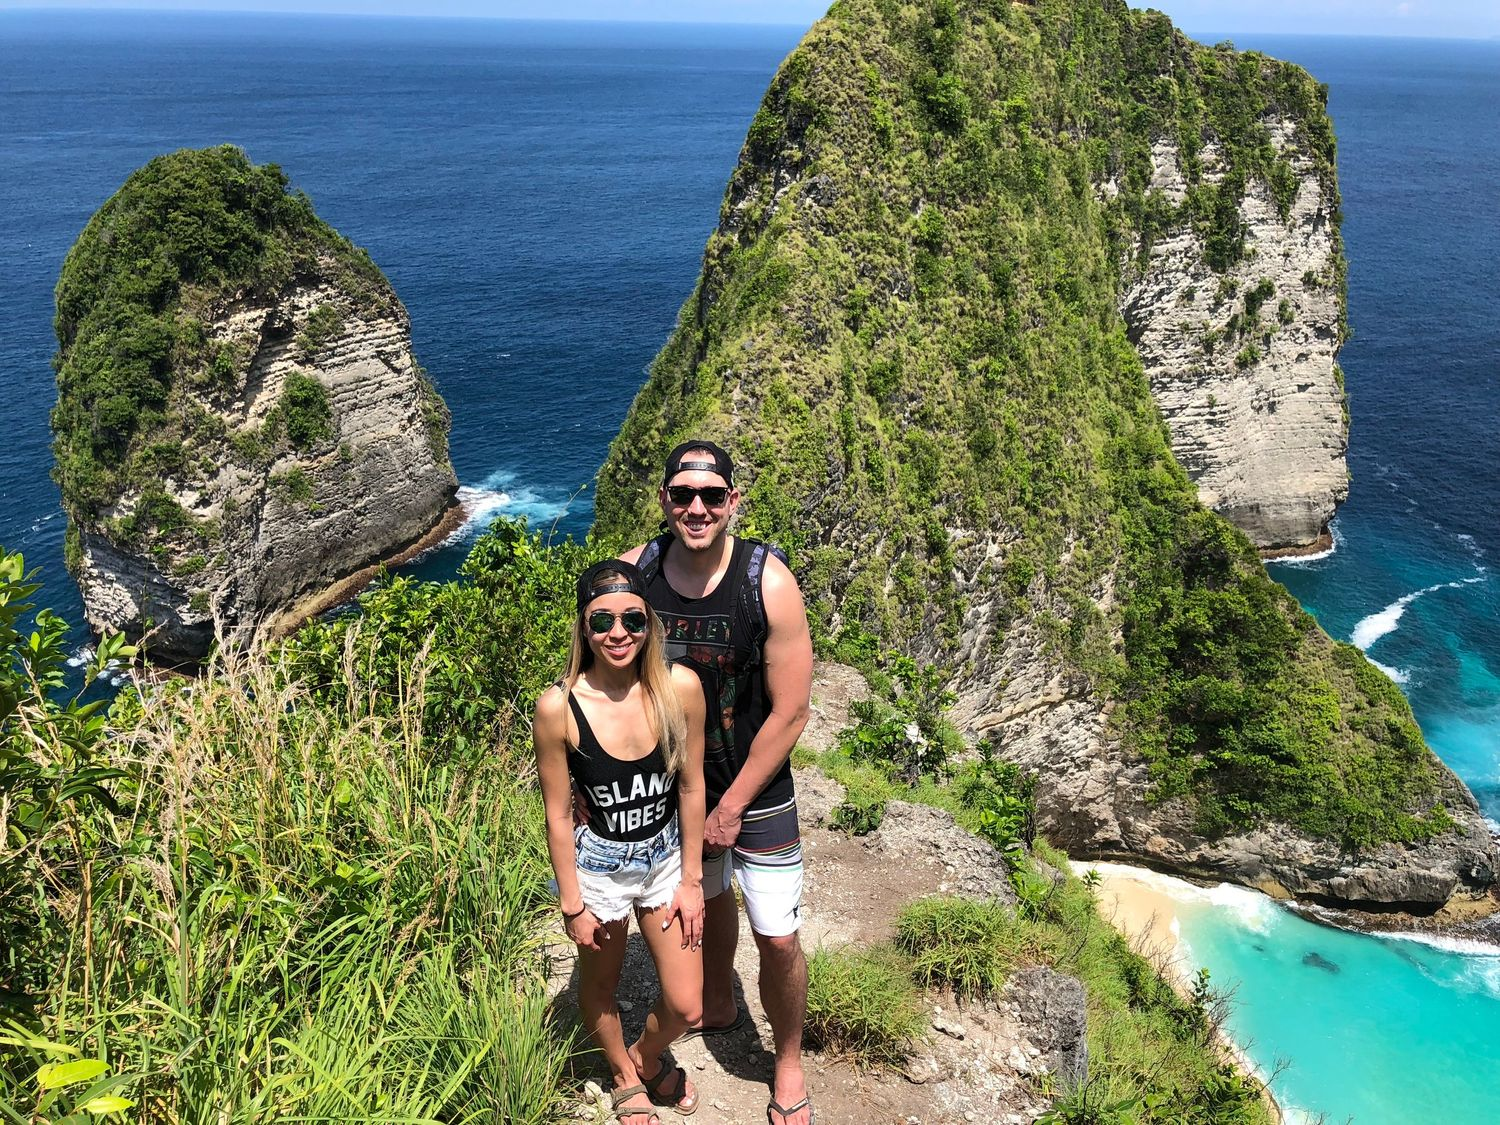 Man and woman posing in front on Nusa Penida